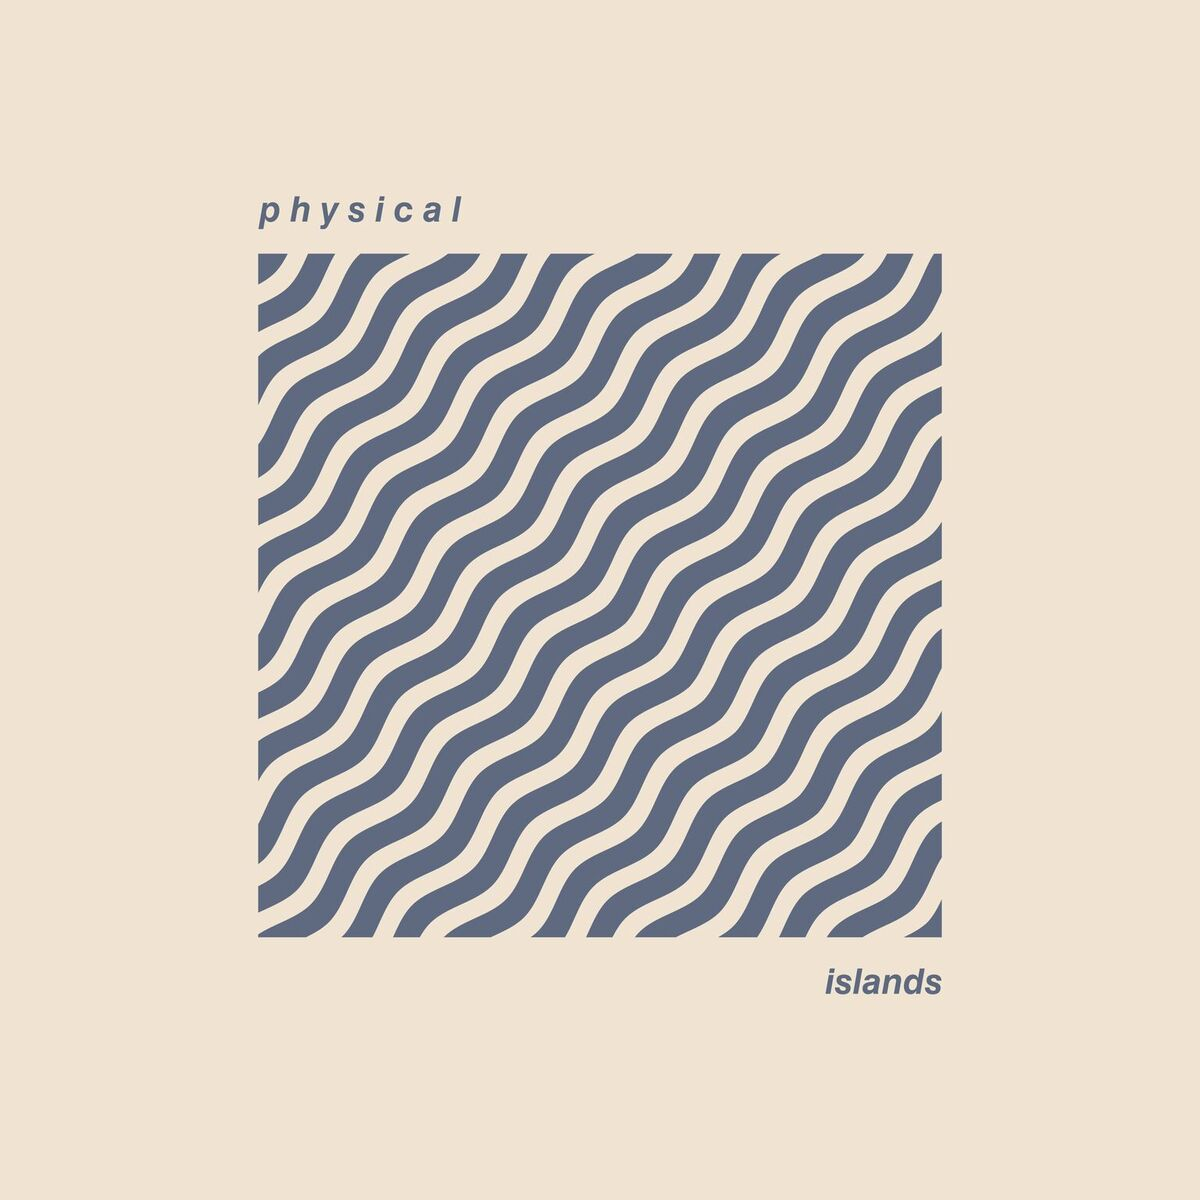 """Islands"" by Physical (Dntel remix) is Northern Transmissions' 'Song of the Day'."